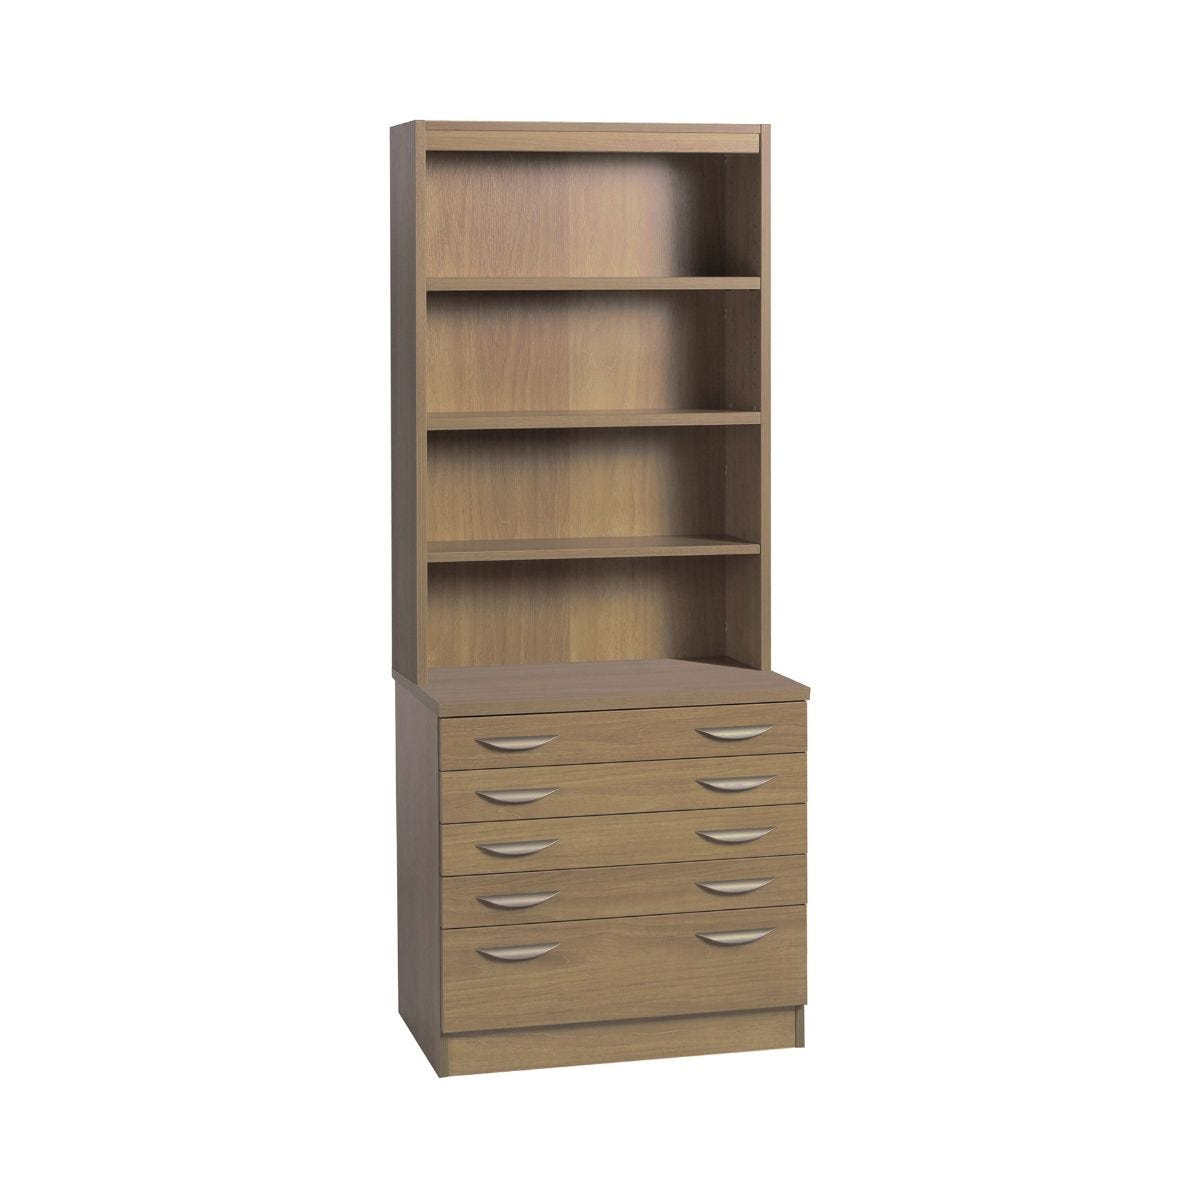 R White Professional 5 Drawer A2 Plan Chest with Overshelving, English Oak Wood Grain